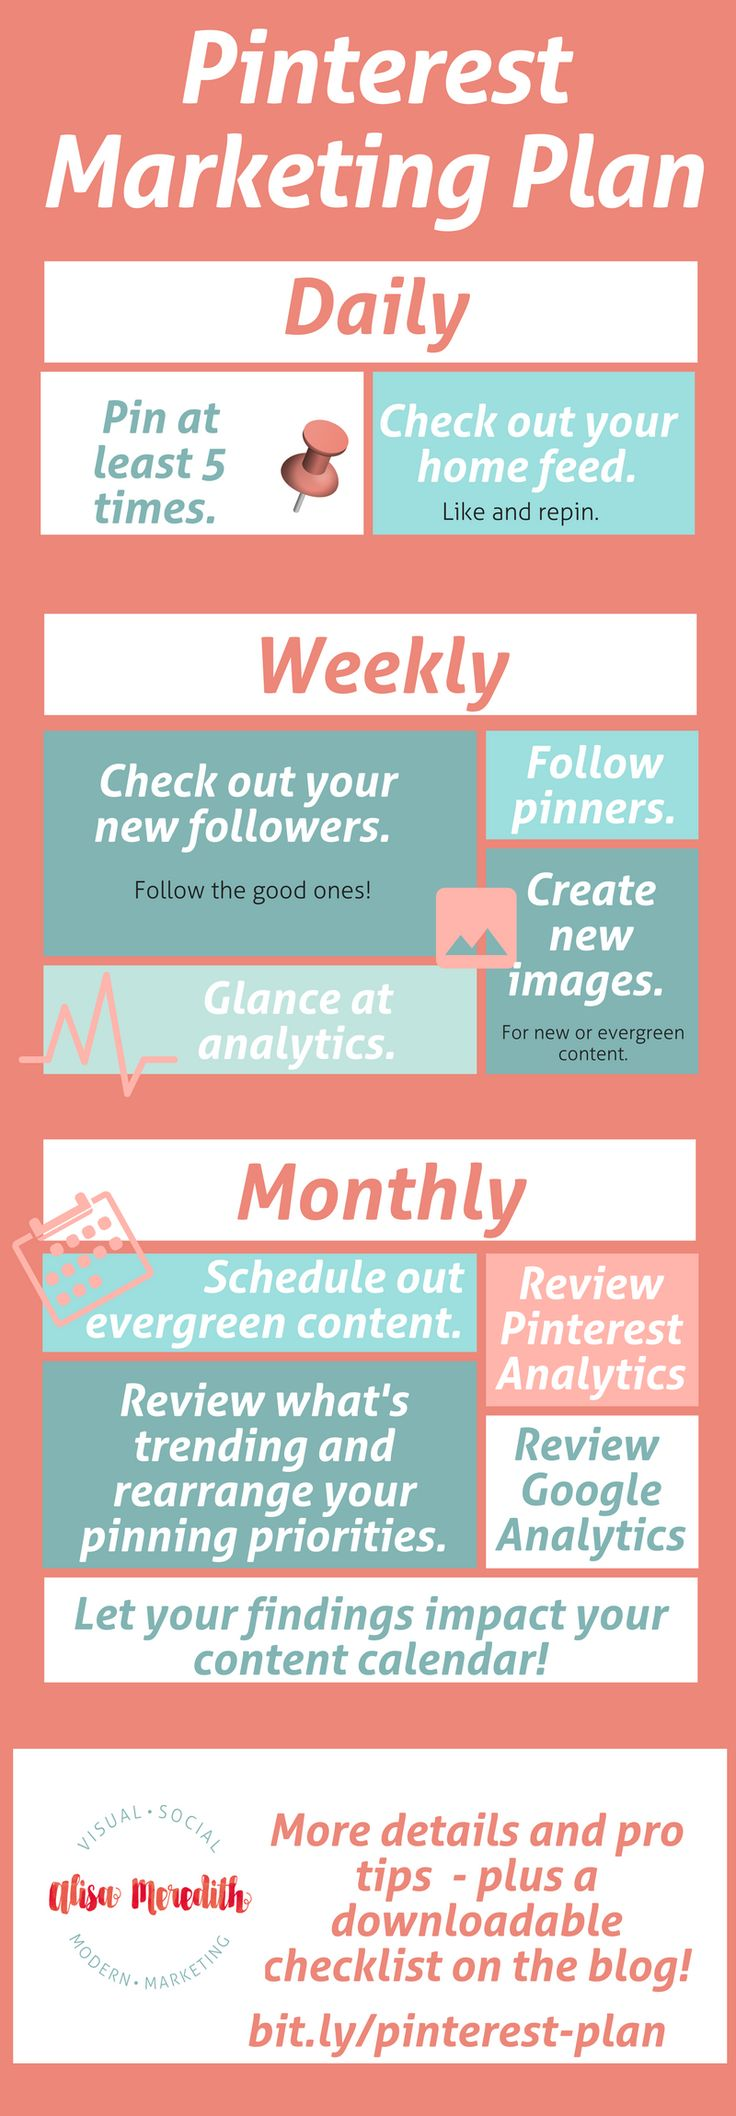 What to do daily, weekly, and monthly for ultimate Pinterest success!